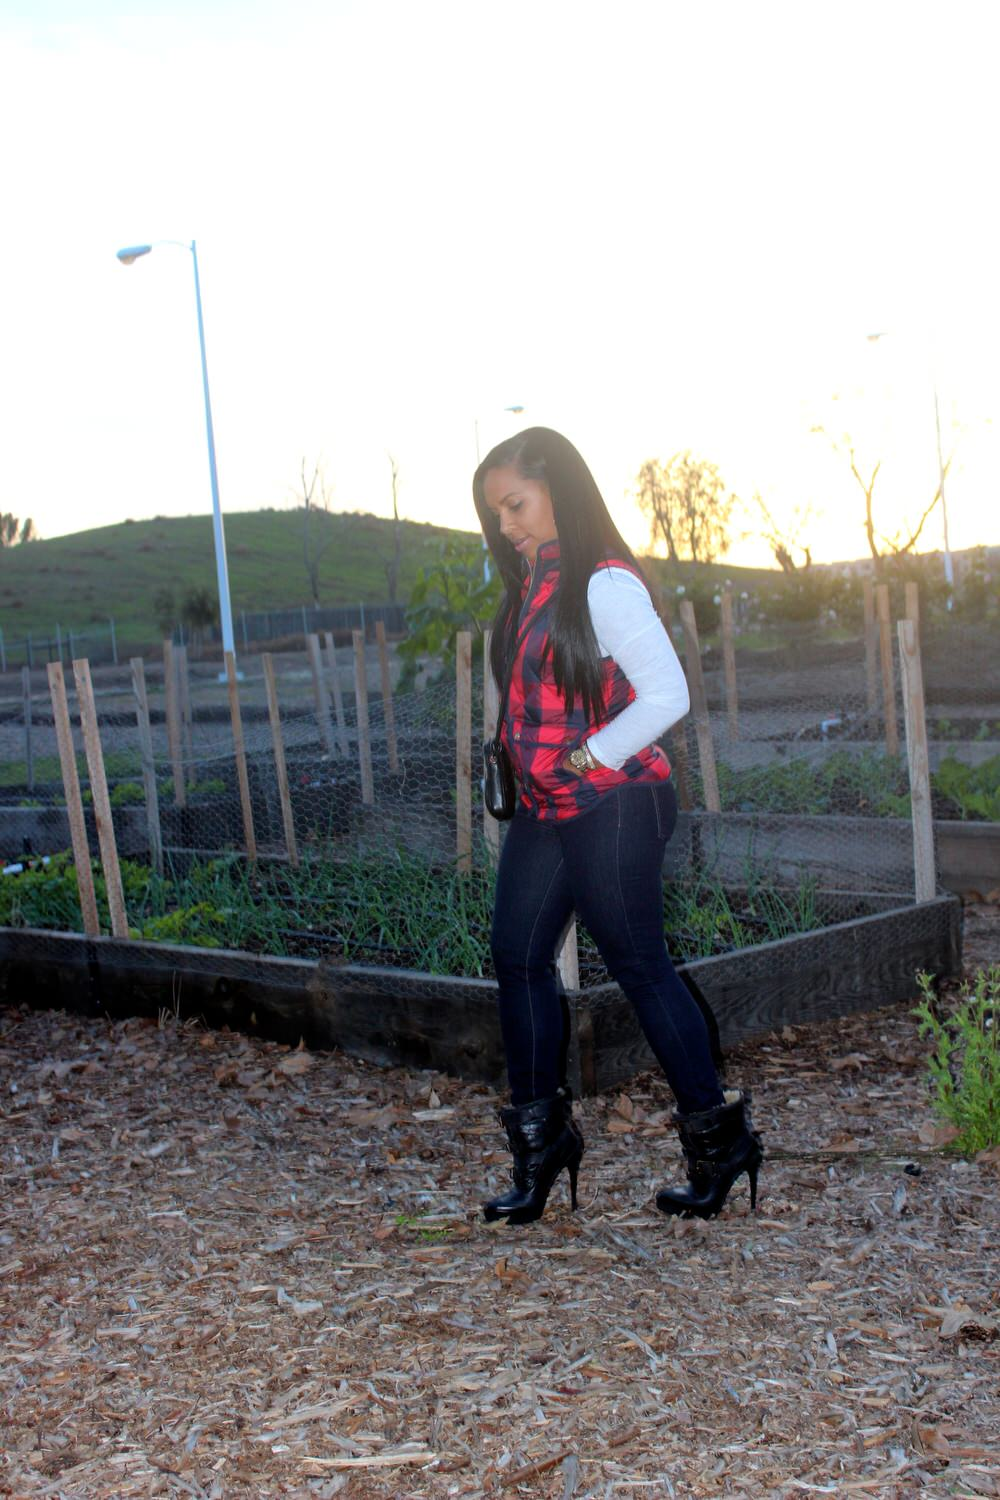 J Crew Excursion Quilted Vest in Buffalo Check, 7 for All Mankind jeans, Burberry boots, Chanel handbag